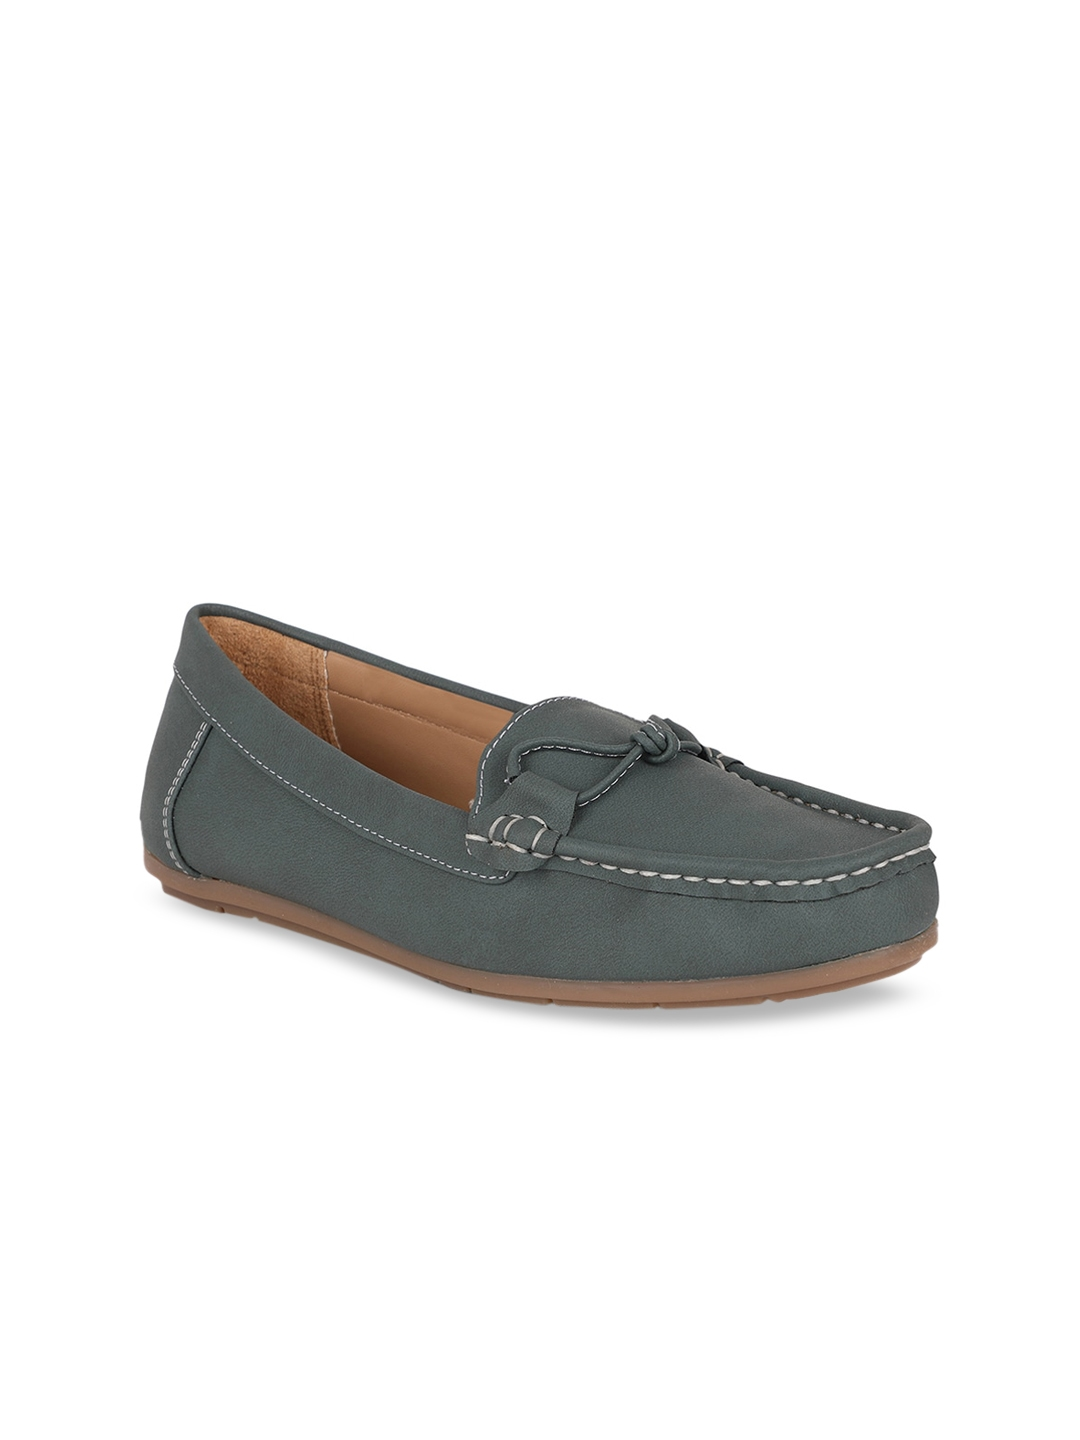 Bata Women Grey Loafers Casual Shoes